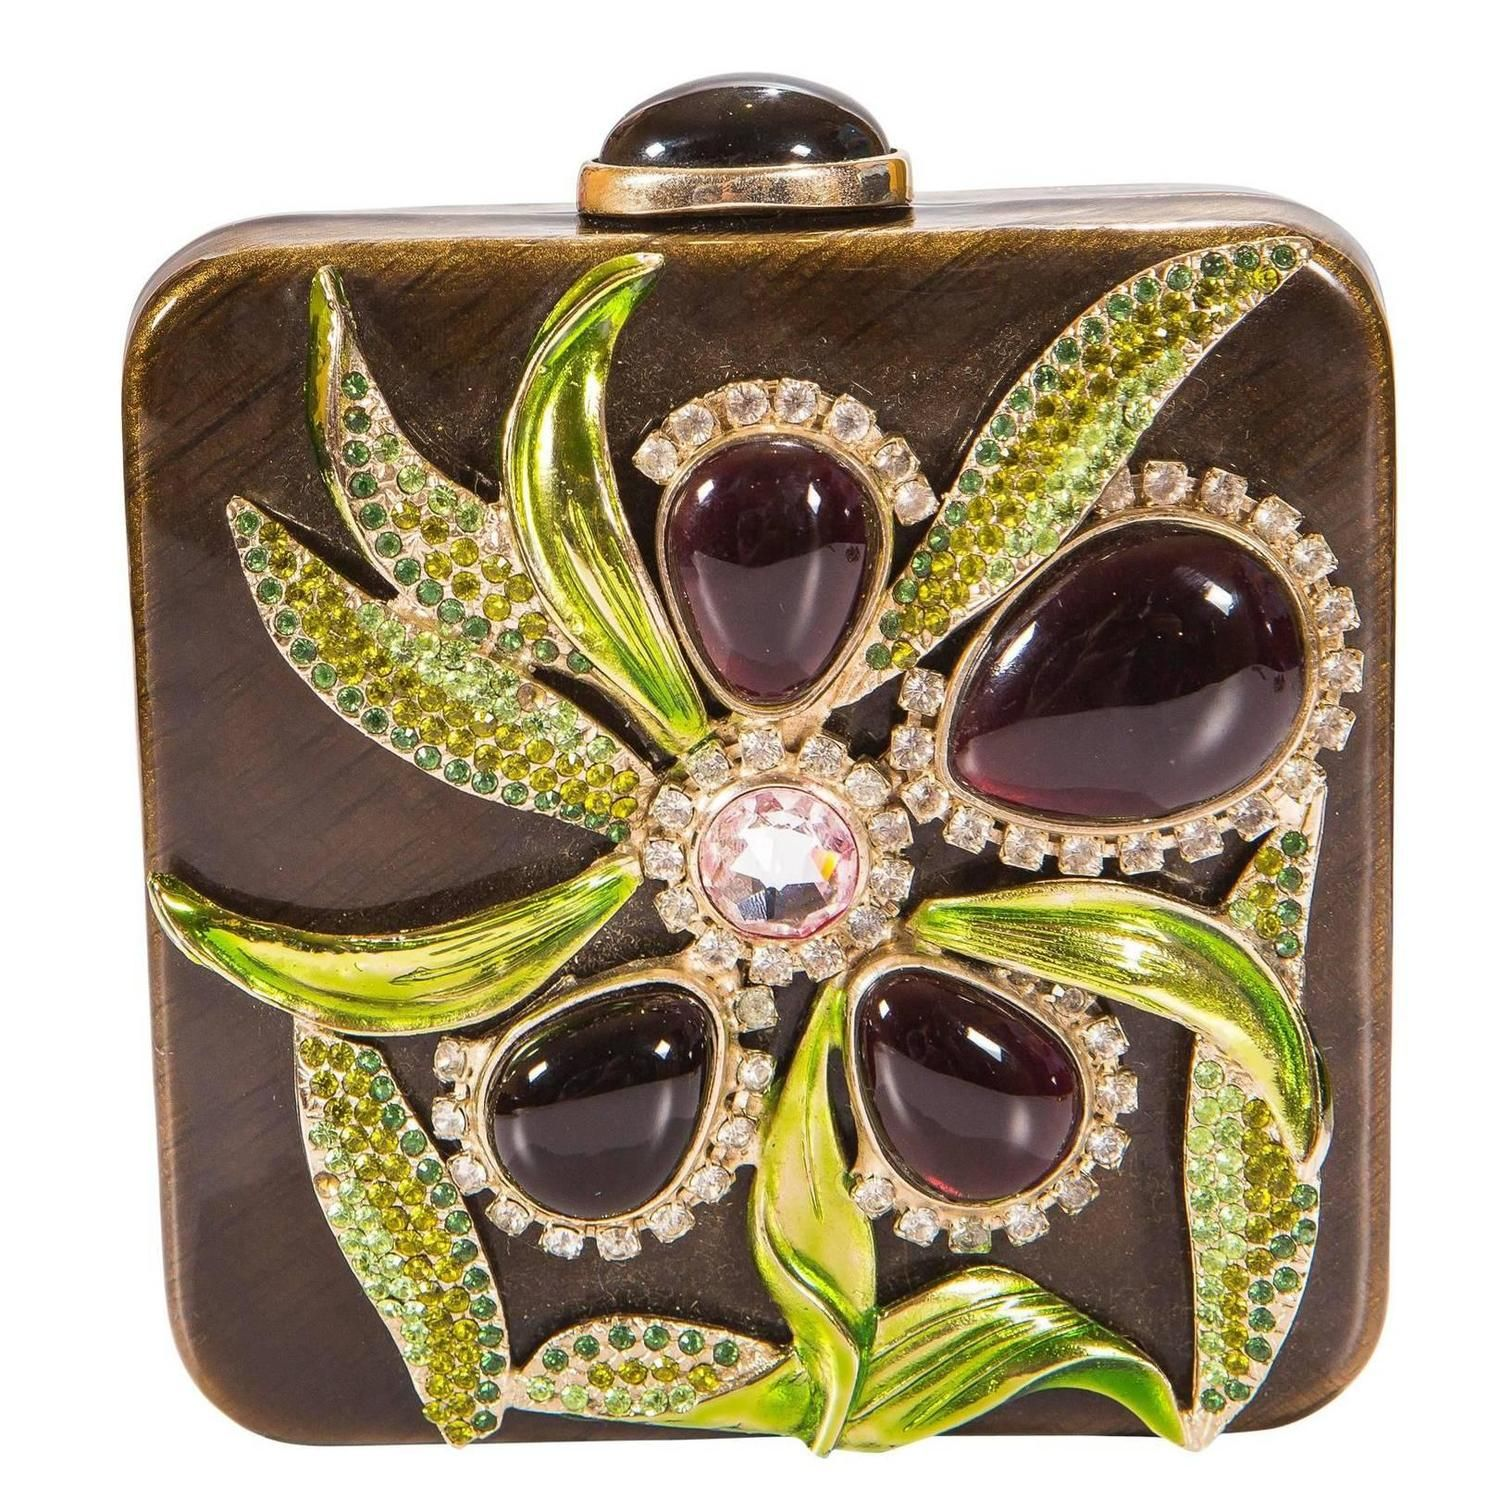 Tom Ford For Yves Saint Laurent S 2004 Jeweled Crystal Clutch From A